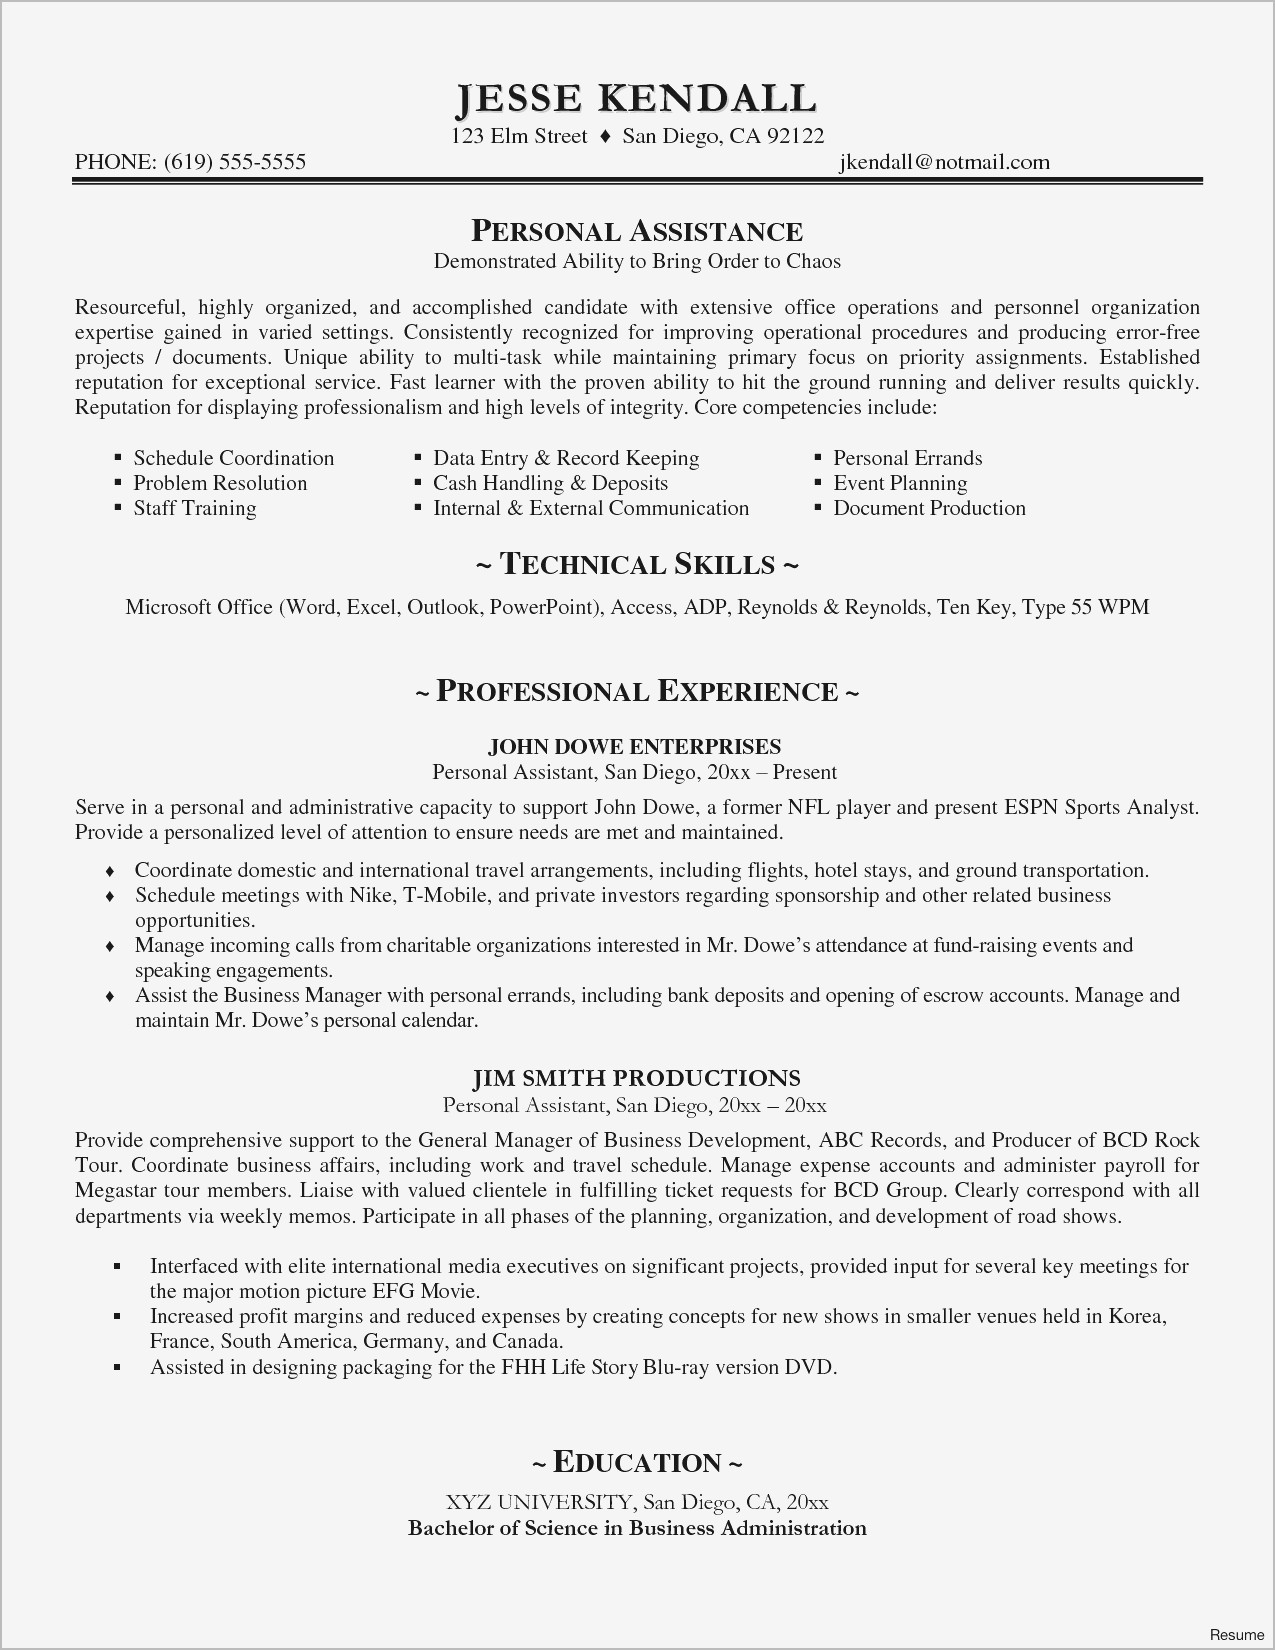 data entry resume template example-Data Entry Resume New Best Perfect Nursing Resume Awesome Nursing Resumes 0d Wallpapers Data Entry 7-m